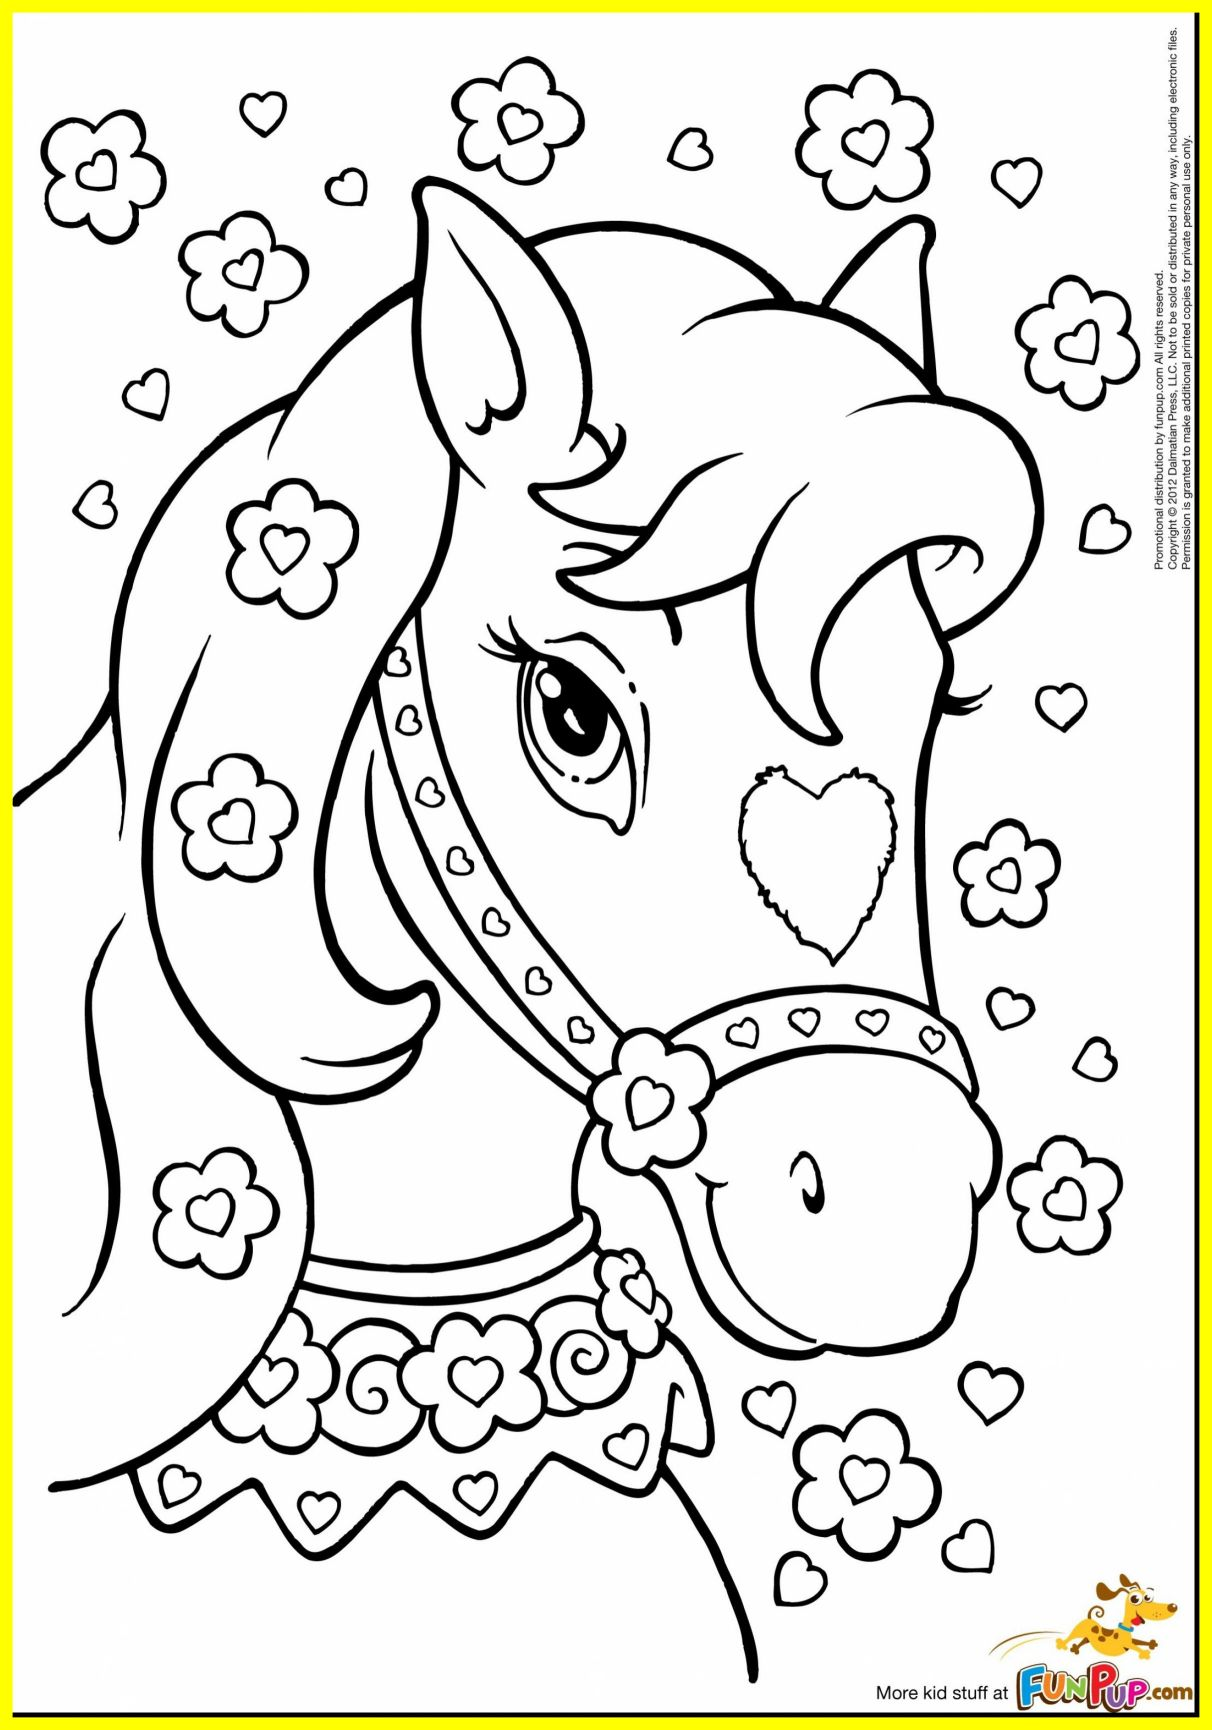 Coloring Pages For 5 Year Olds At Getcolorings